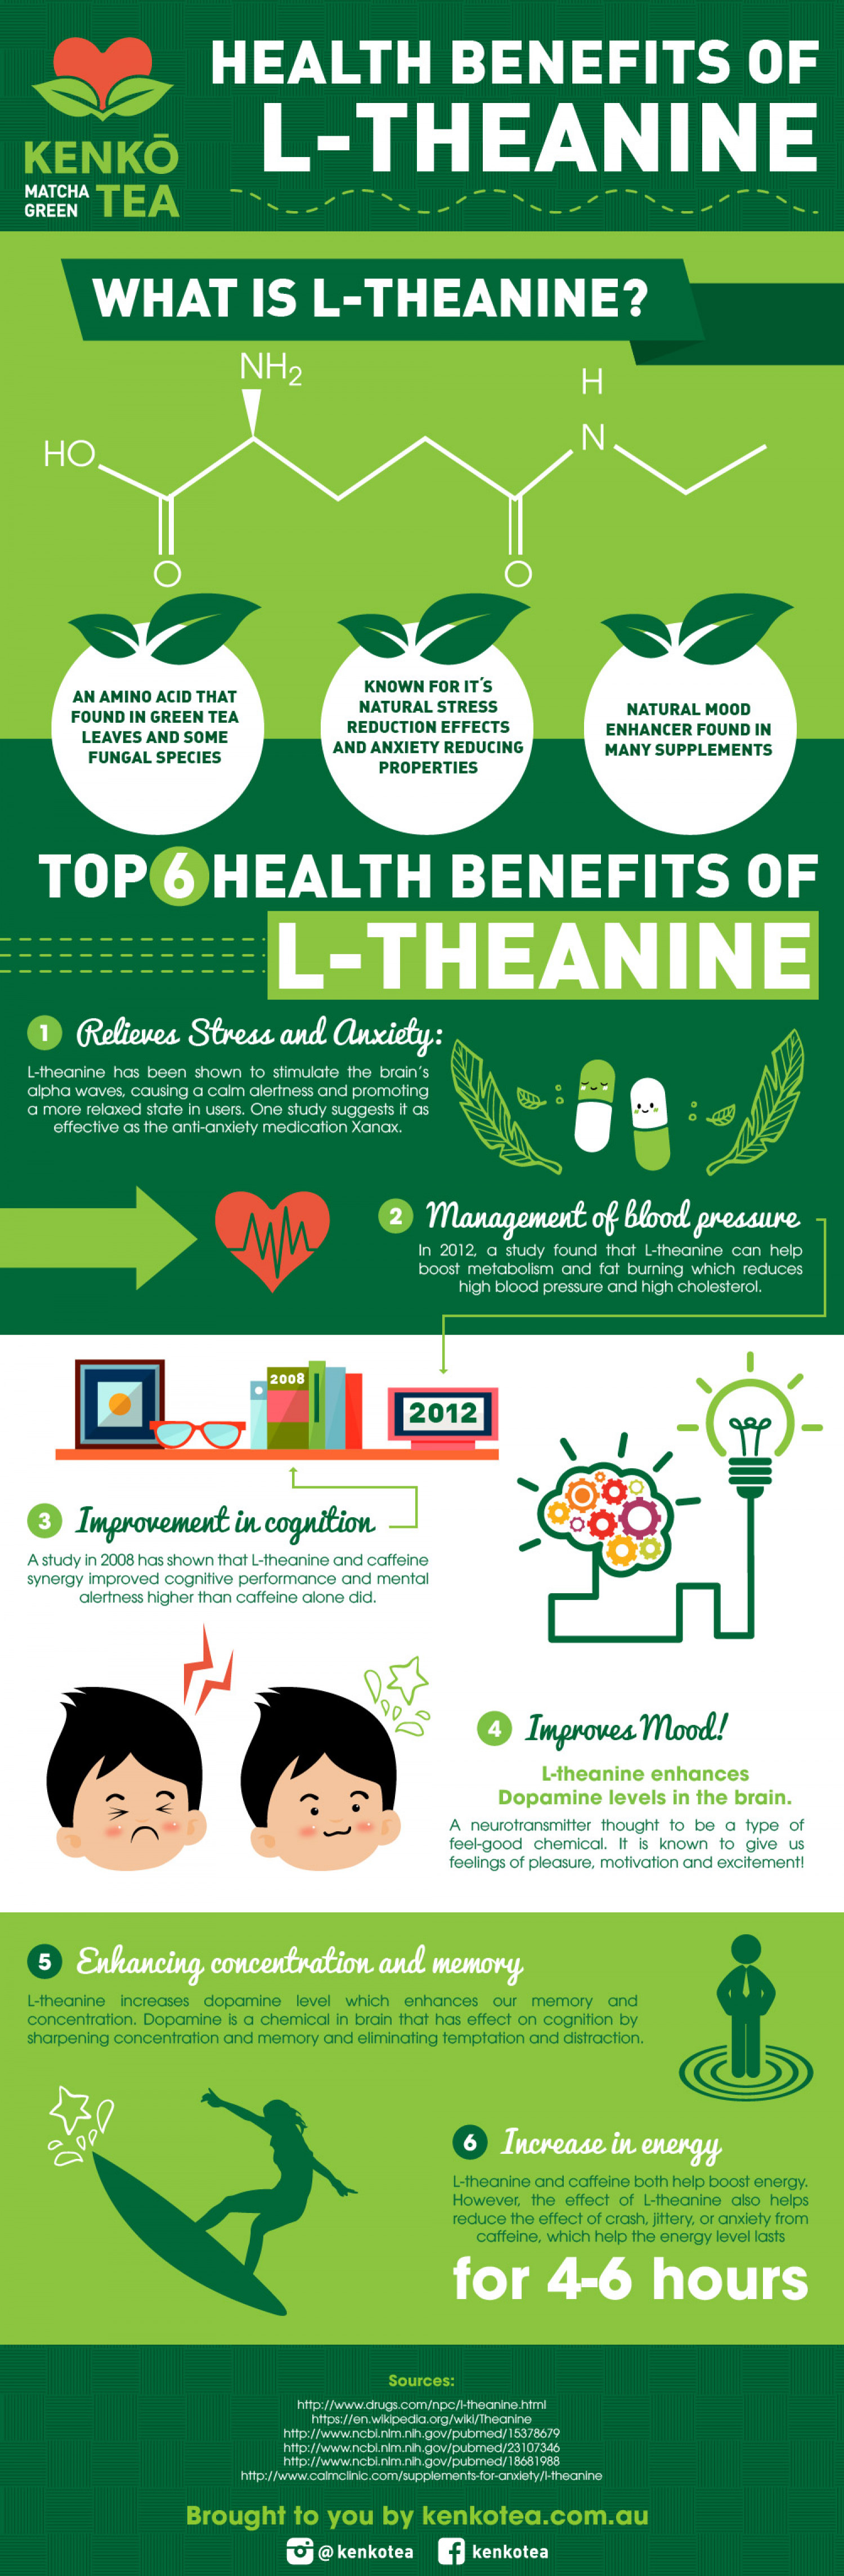 Health Benefits of L-Theanine | Kenko Tea Infographic